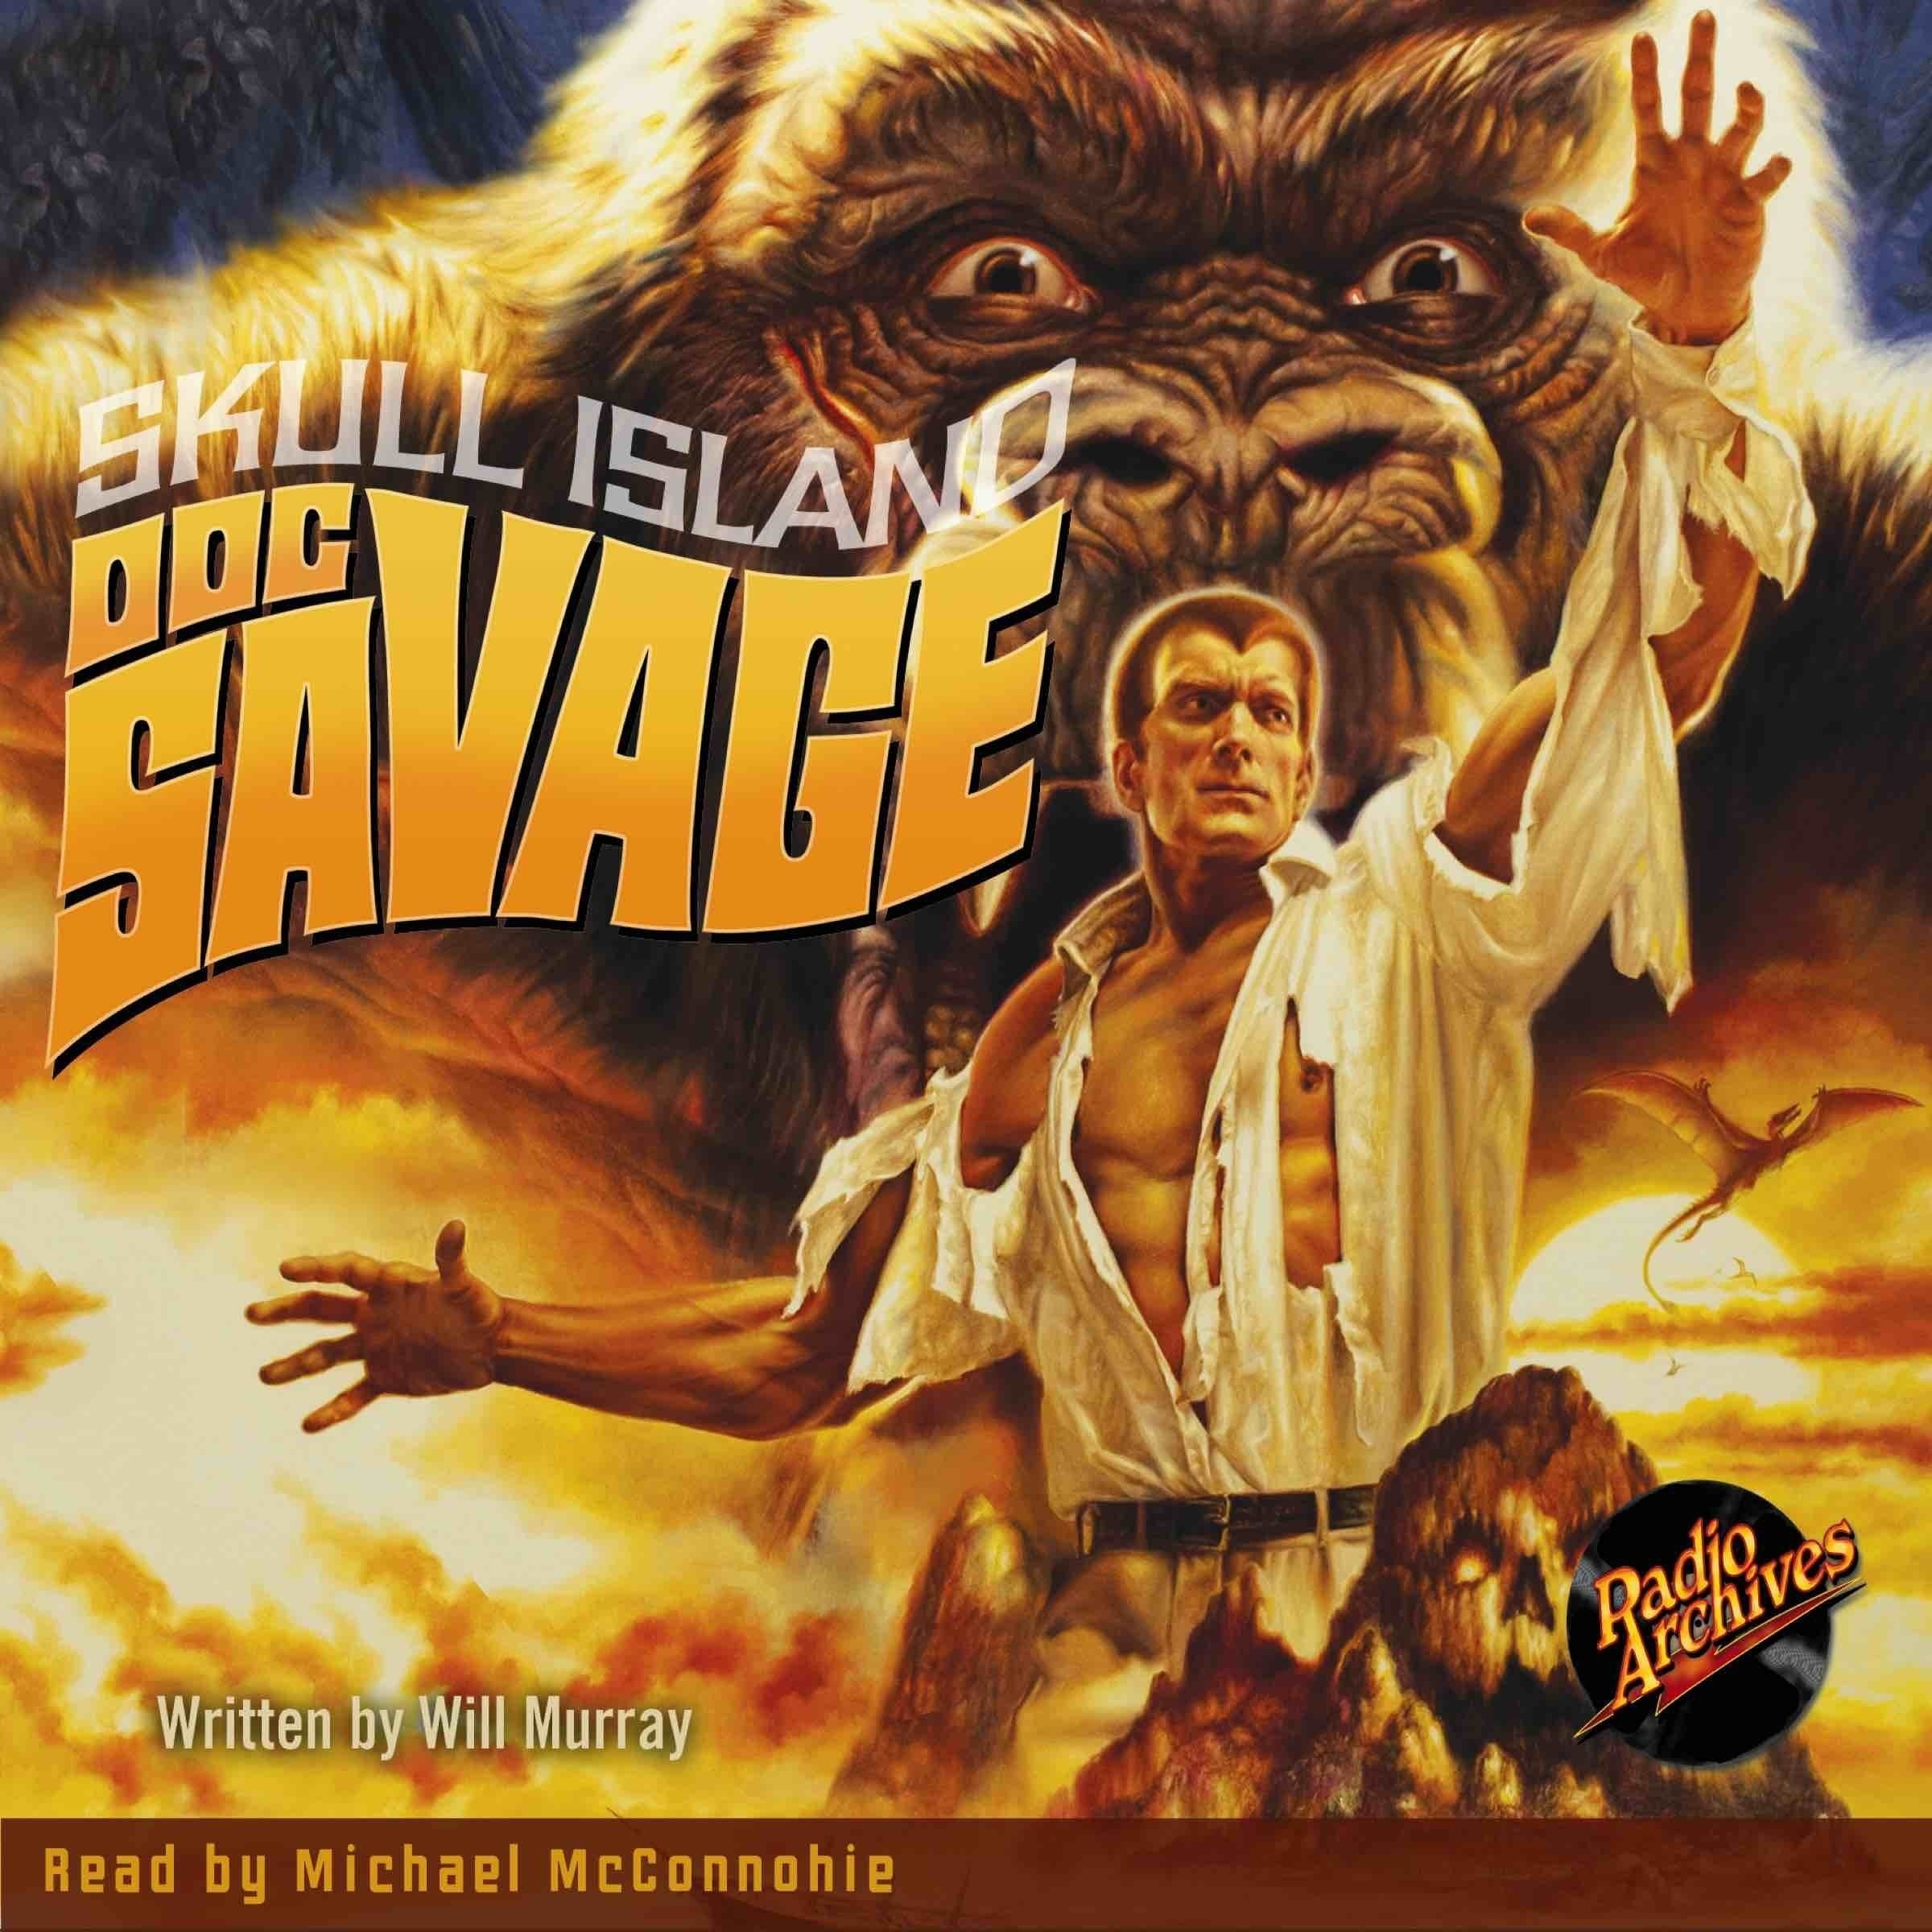 Printable Doc Savage #3: Skull Island Audiobook Cover Art